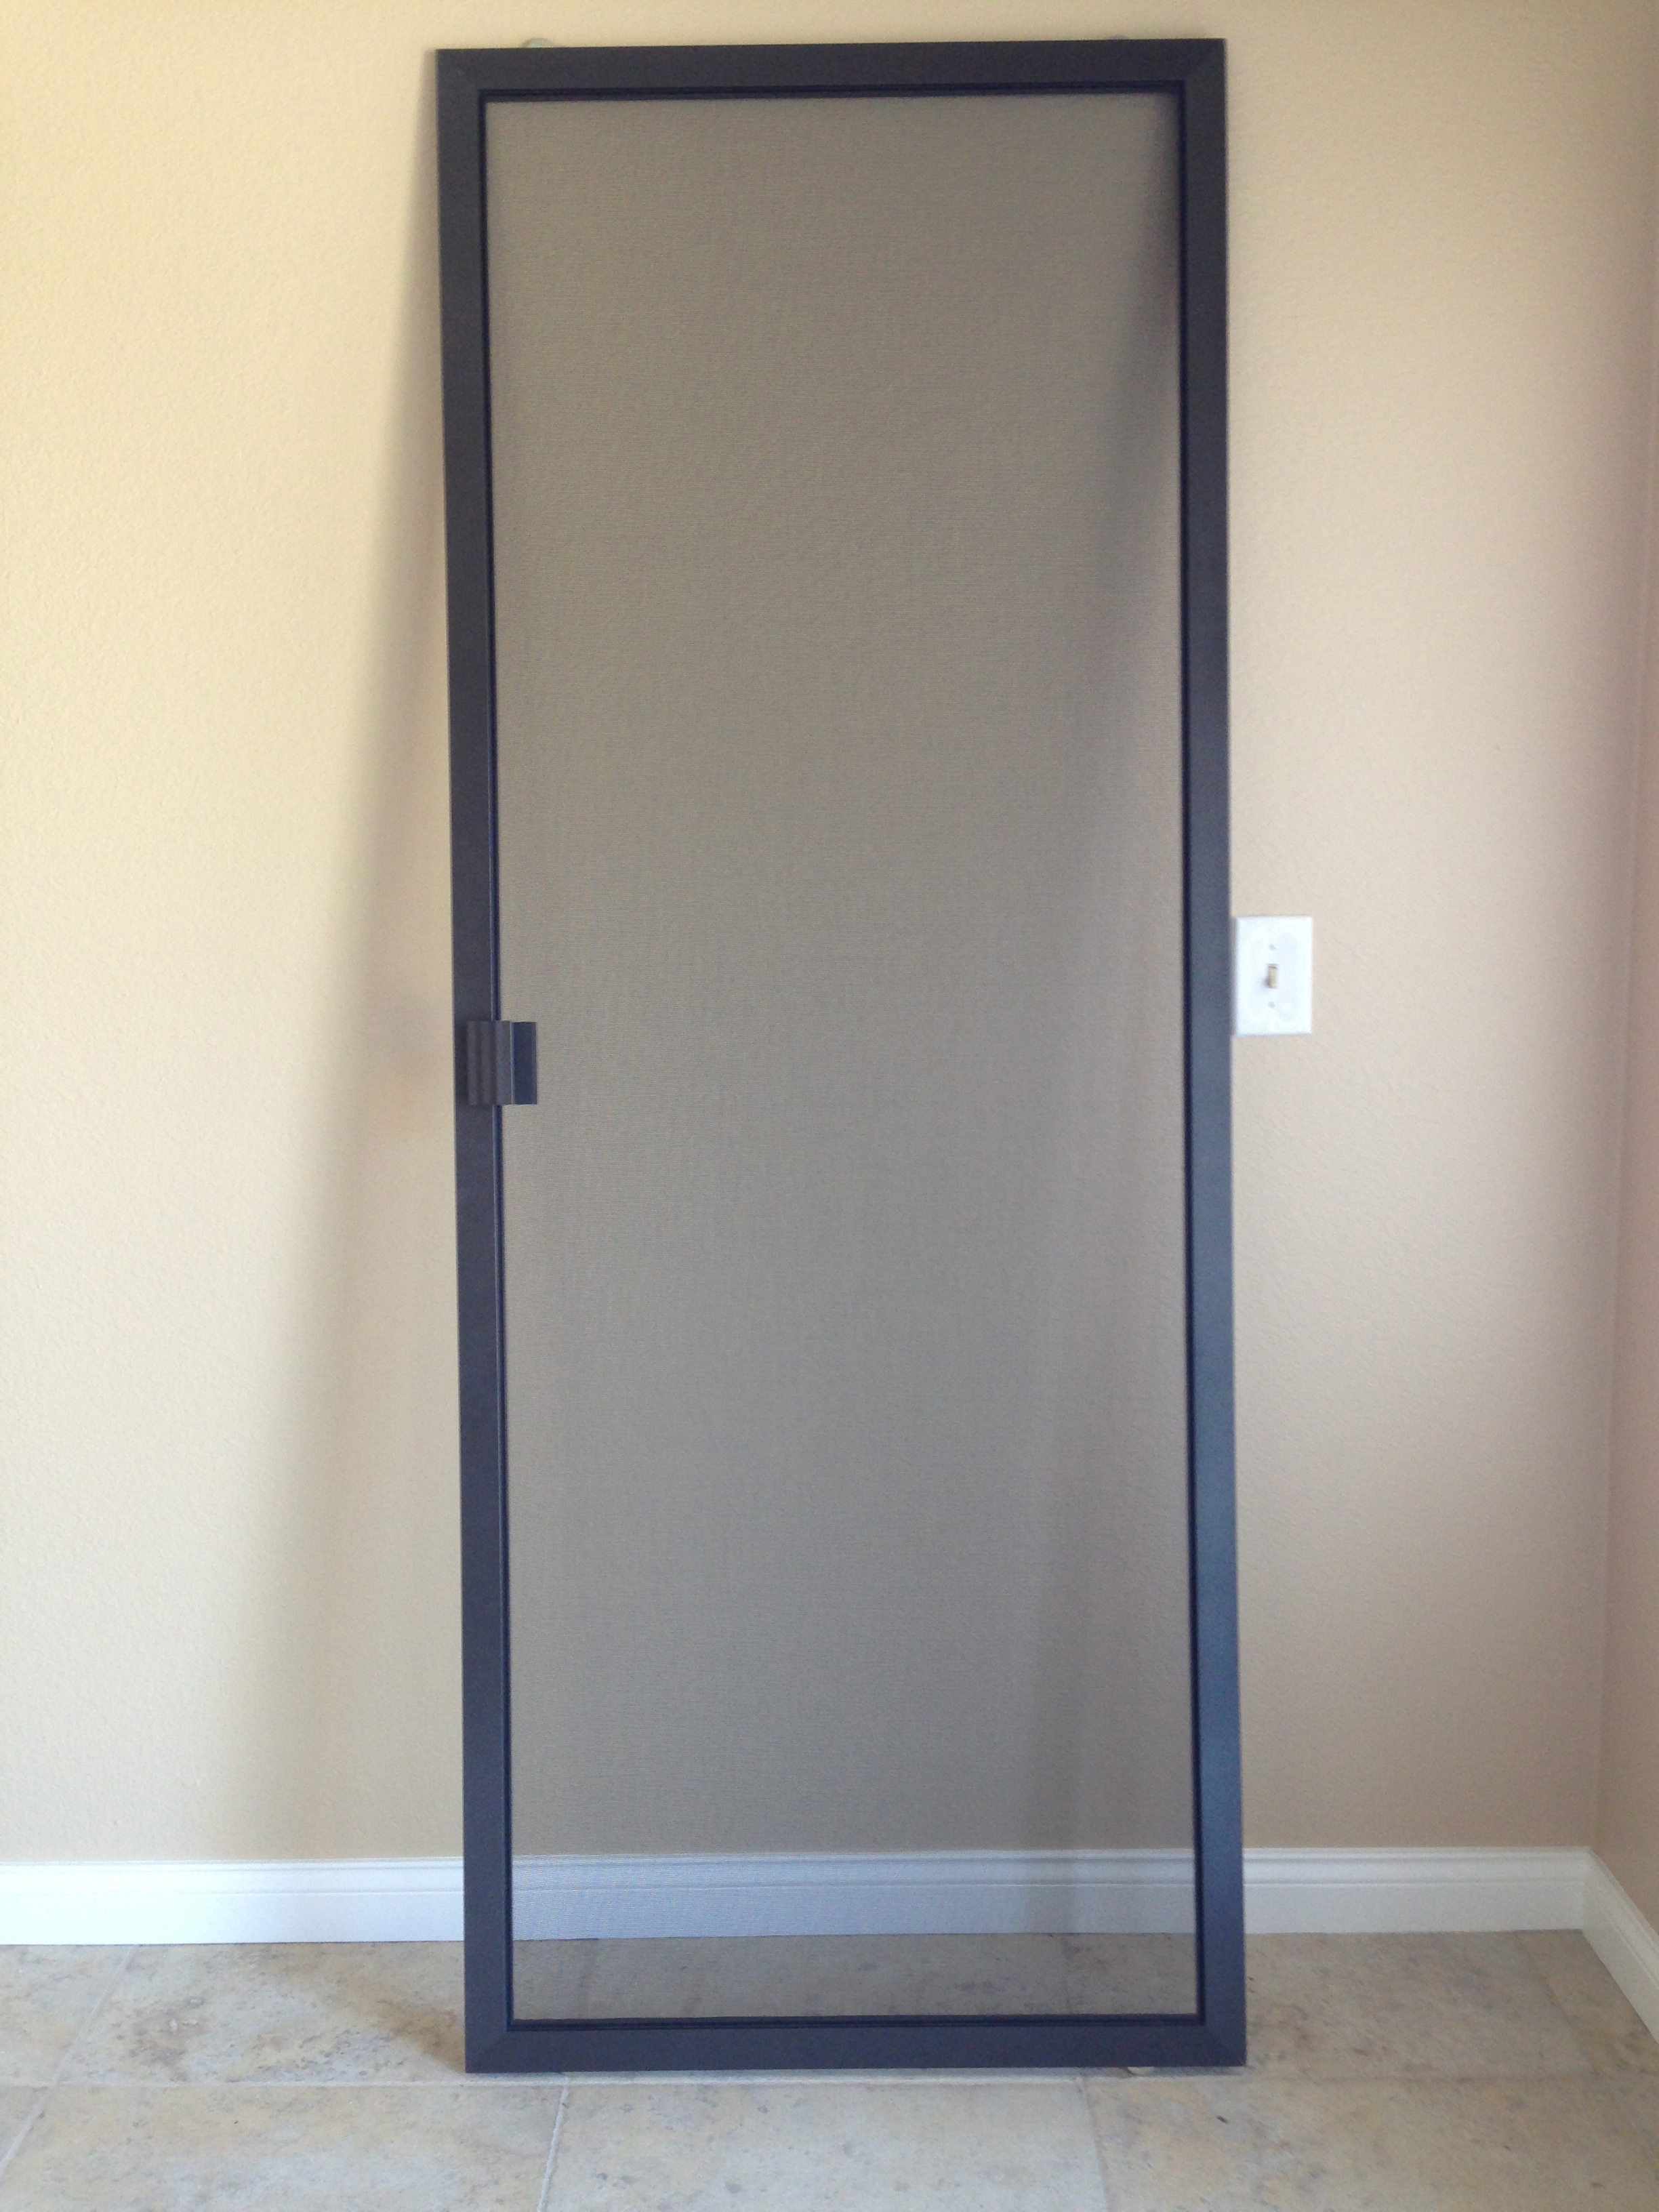 Simi valley screen doors rescreened how to choose the for Screen new window